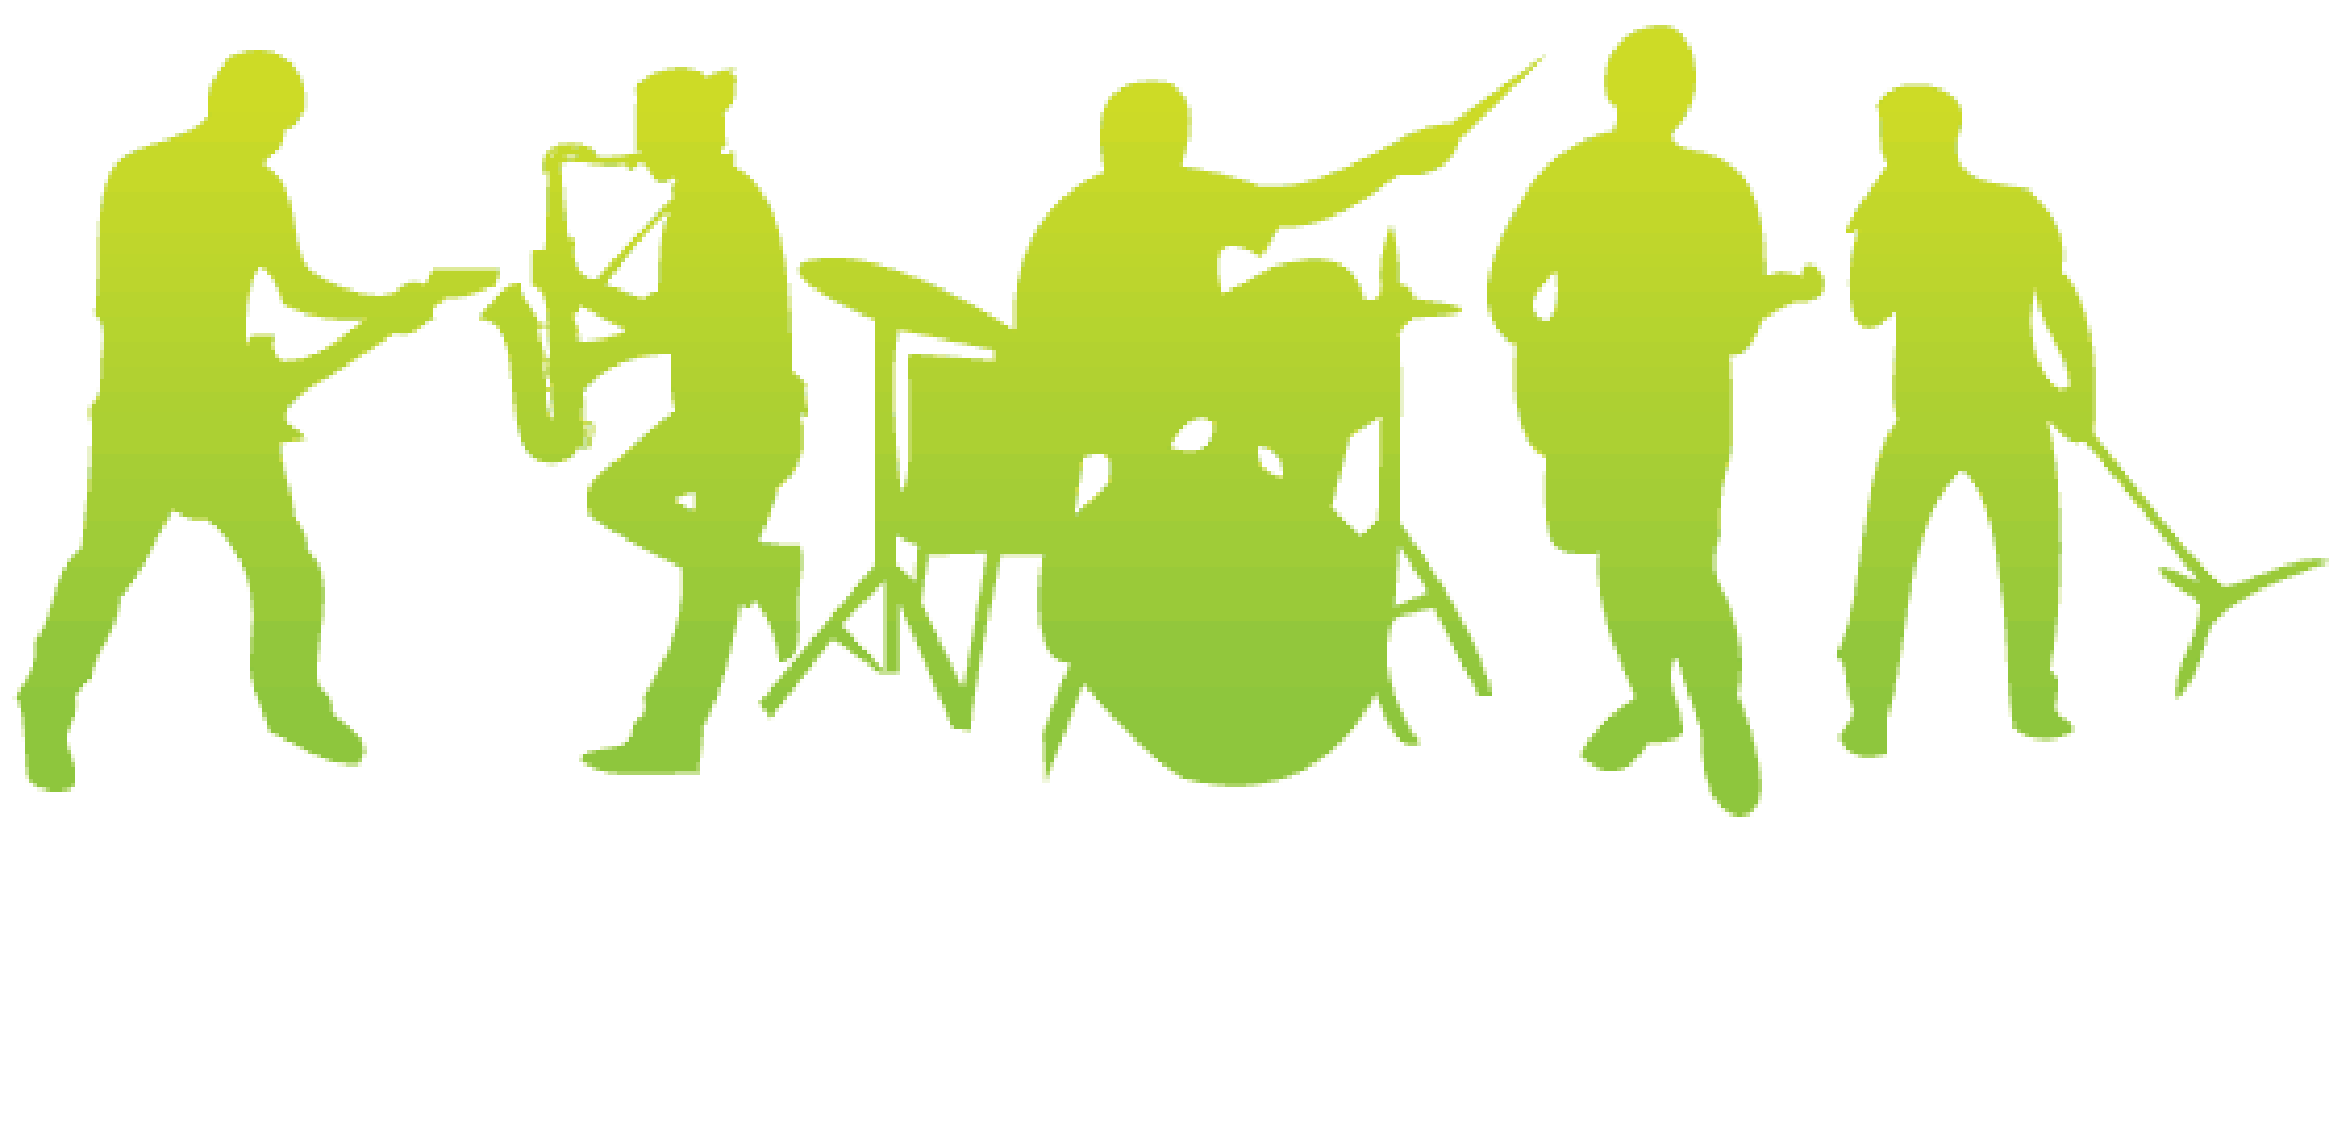 Team clip. The song building blog